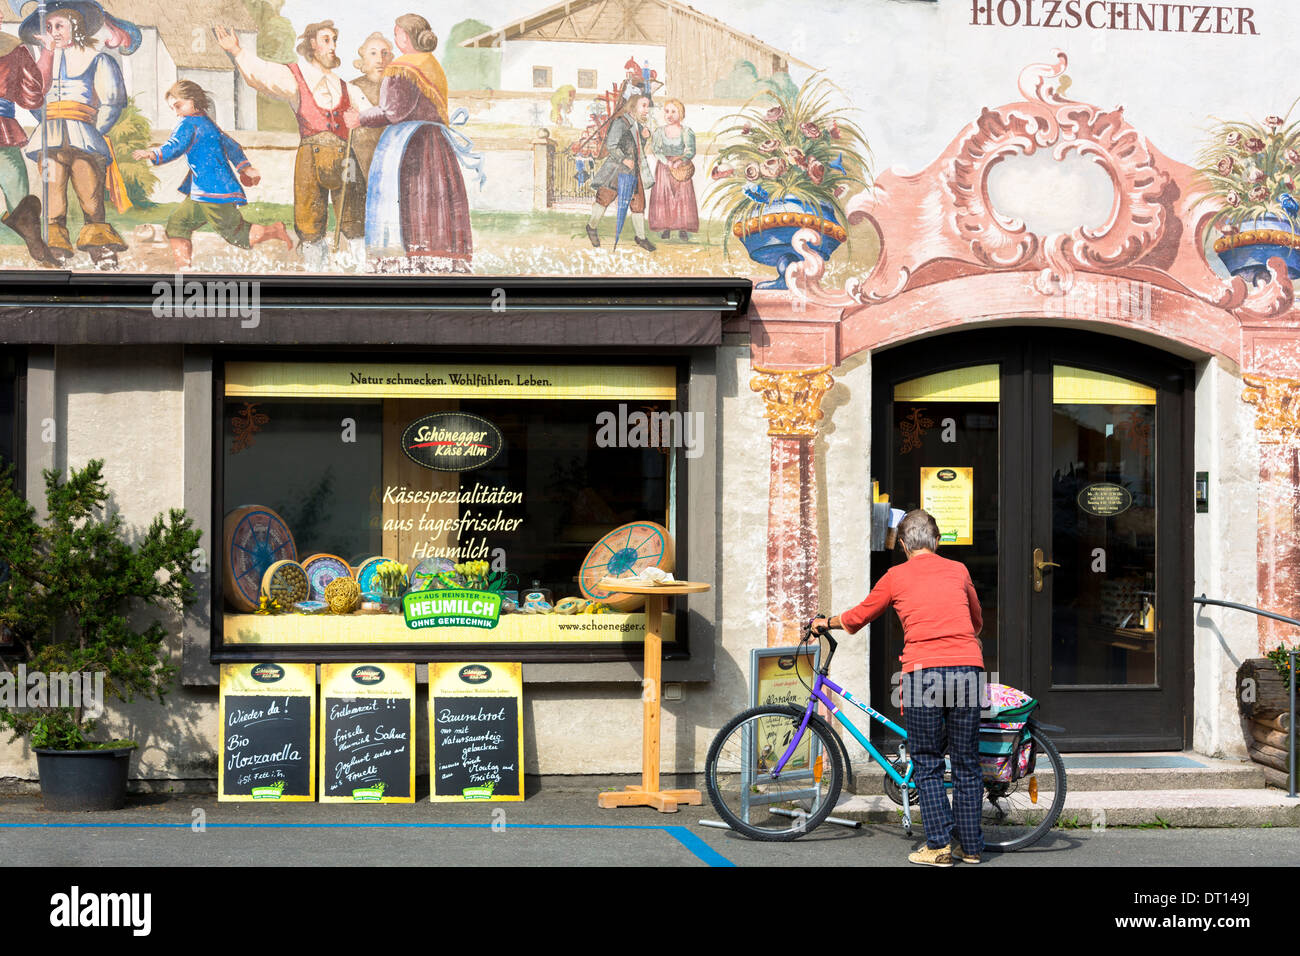 Artisan food shop selling bread and cheese in the village of Oberammergau in Bavaria, Germany - Stock Image